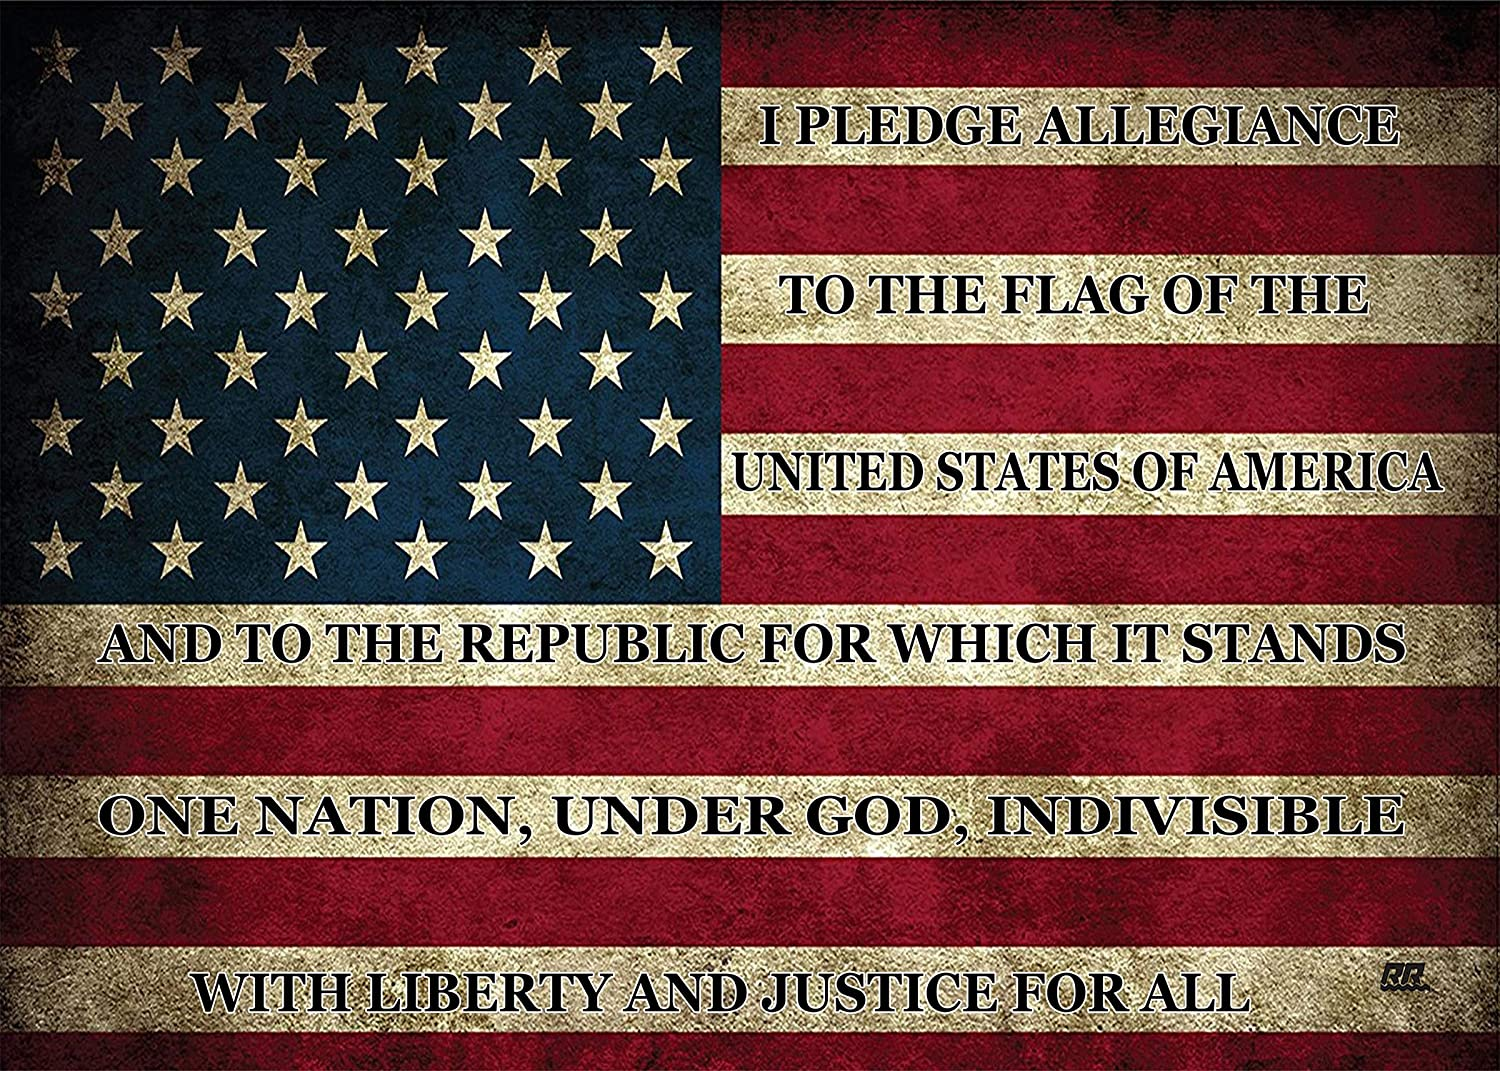 Rogue River Tactical Large USA Flag Pledge of Allegiance Rustic Canvas Print Wall Decor US Patriotic Art Decoration 20x16 Inch